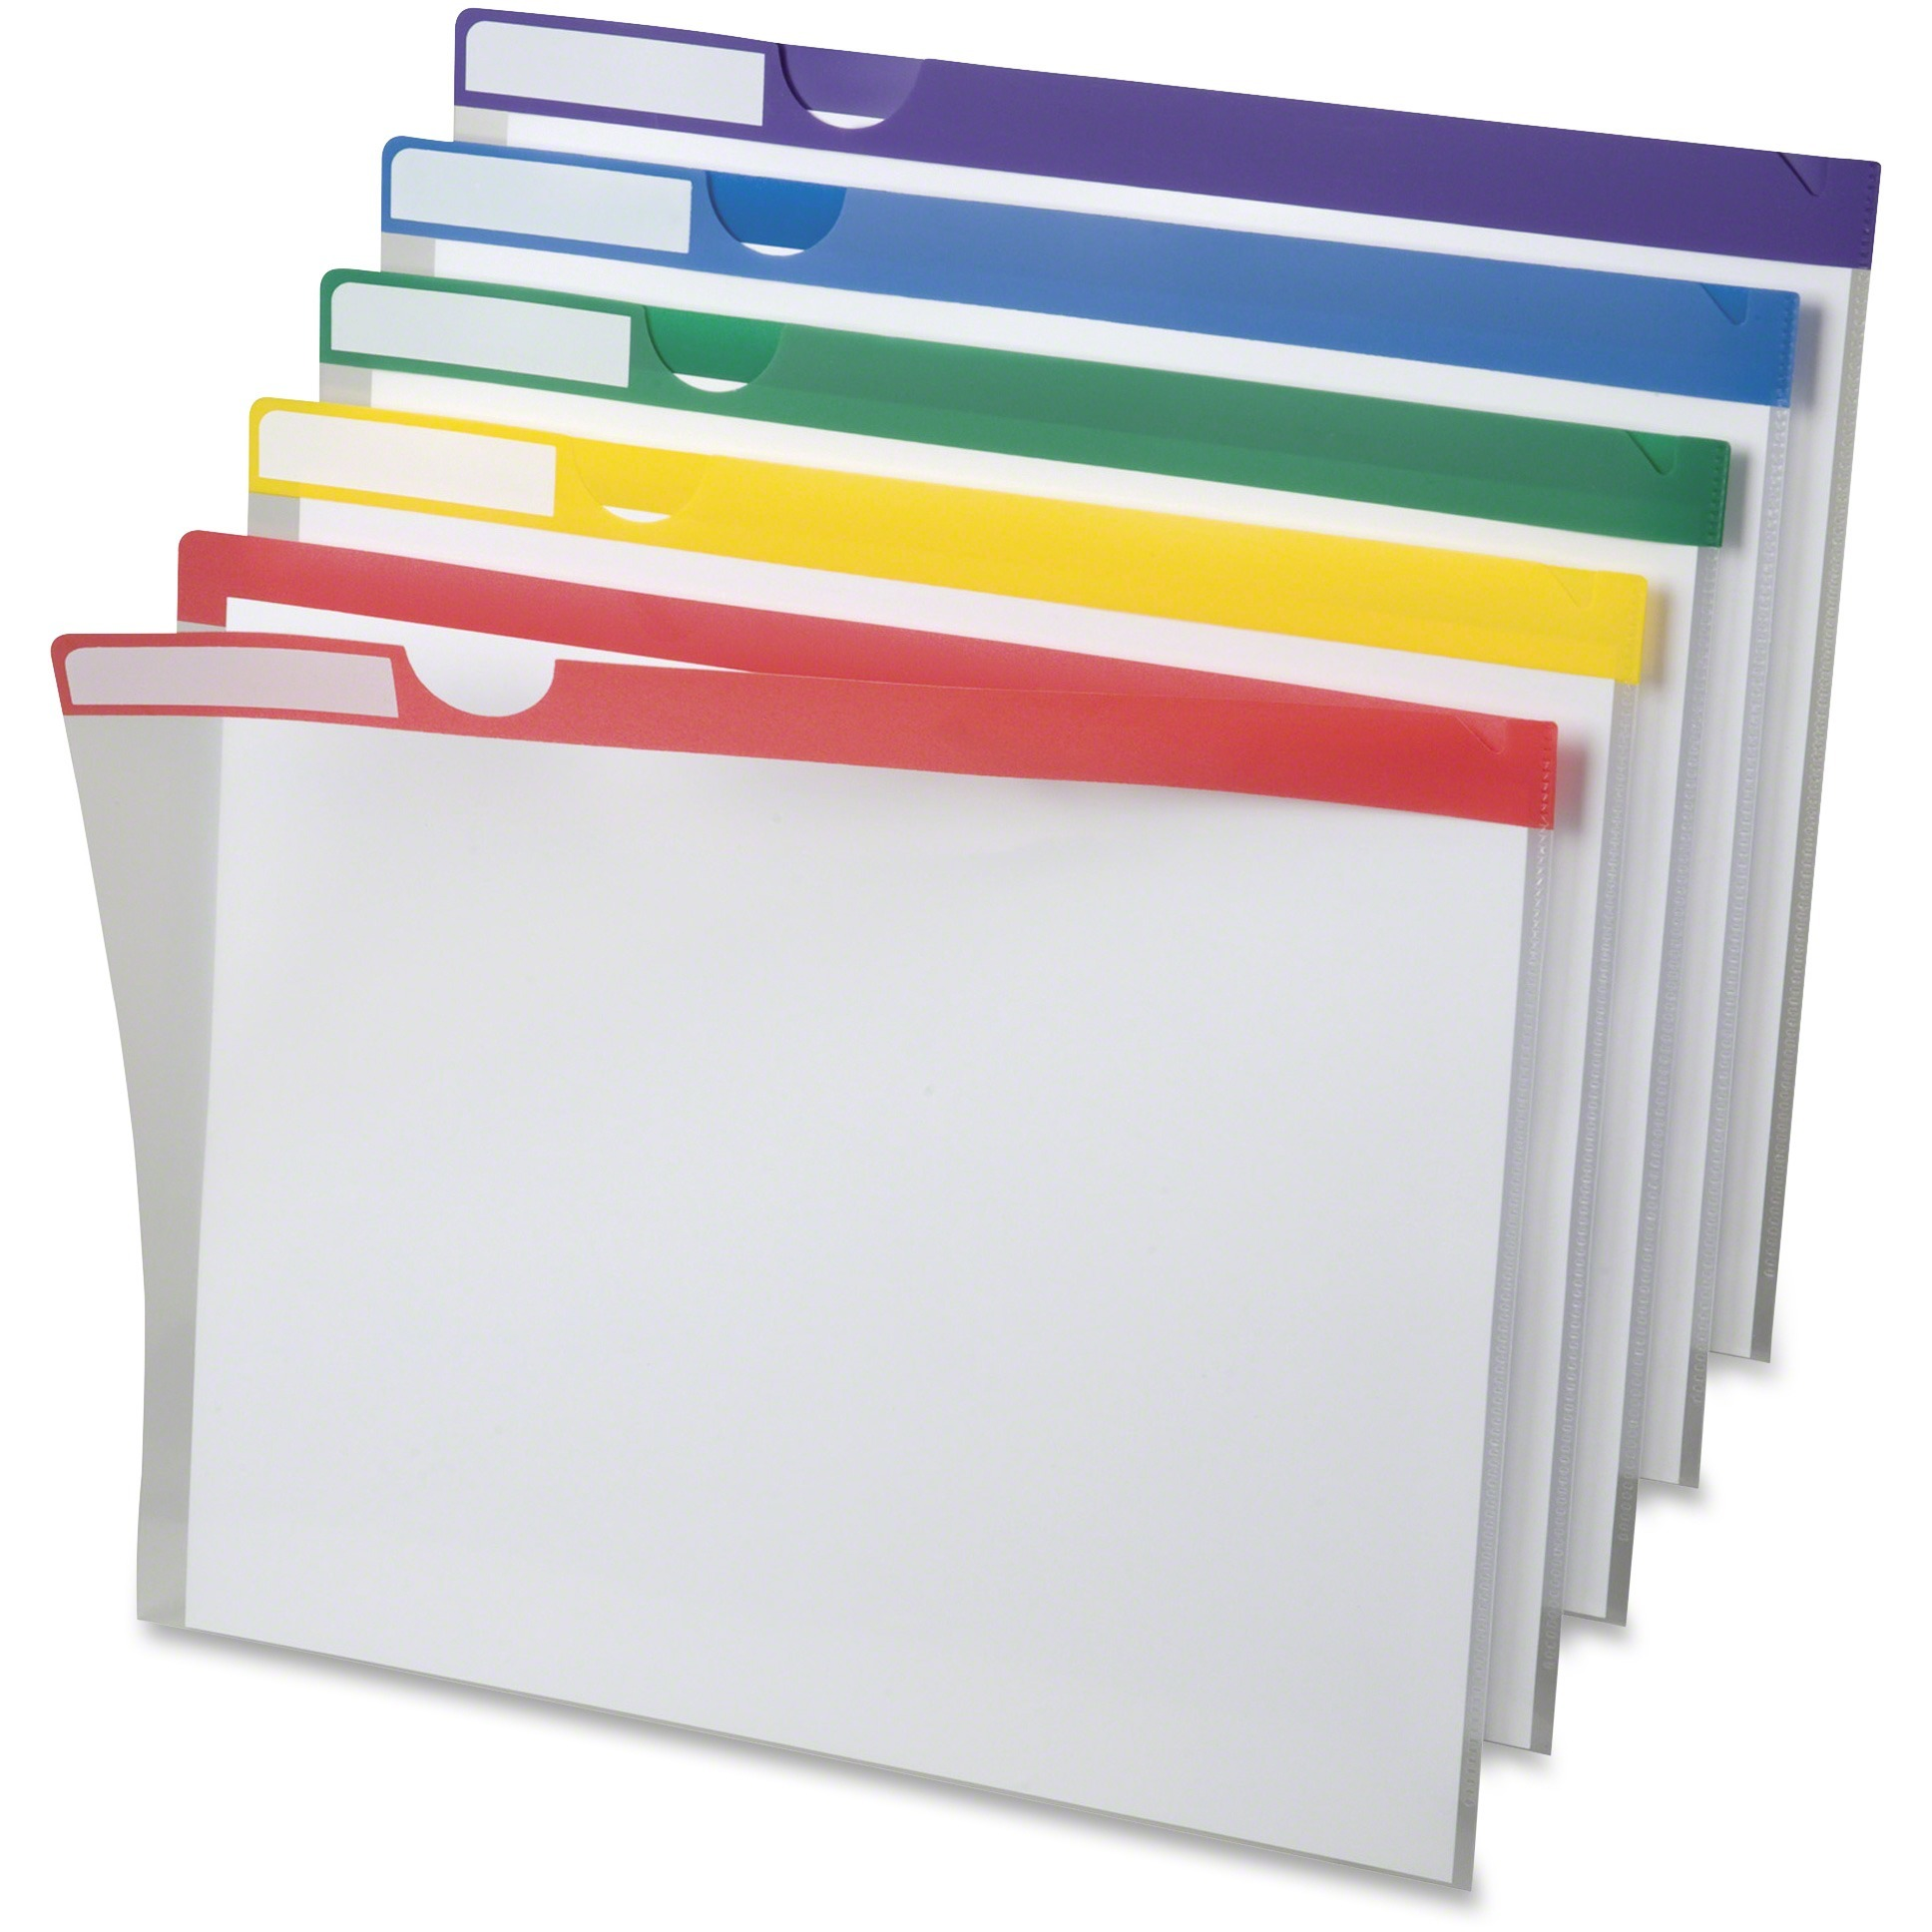 Pendaflex, PFX50981, Clear Poly Index Folders, 10 / Pack, Assorted